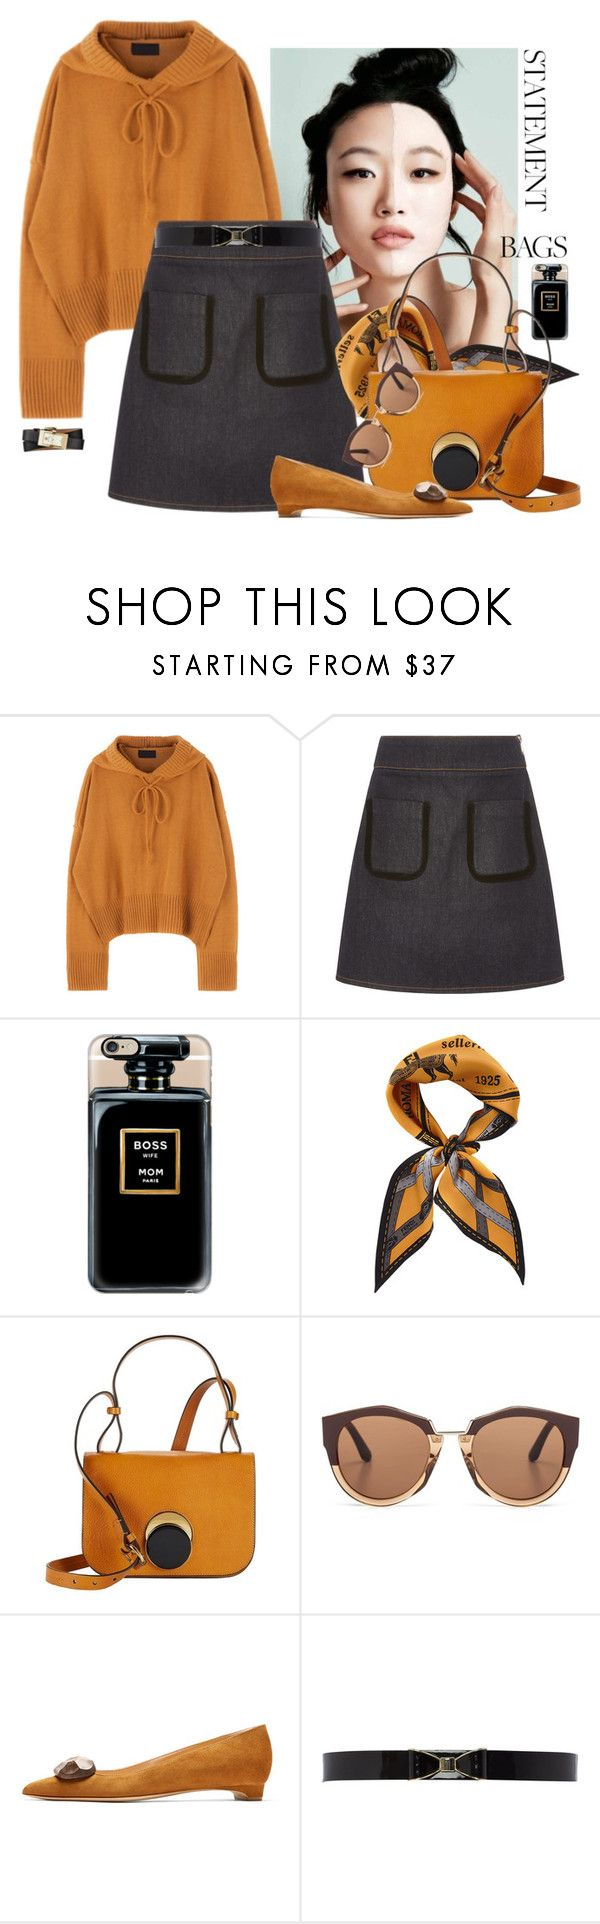 """Statement Bags"" by ysmn-pan ❤ liked on Polyvore featuring Sonia by Sonia Rykiel, Casetify, Fendi, Marni, Rupert Sanderson, Therapy, Tory Burch, contest and statementbags"